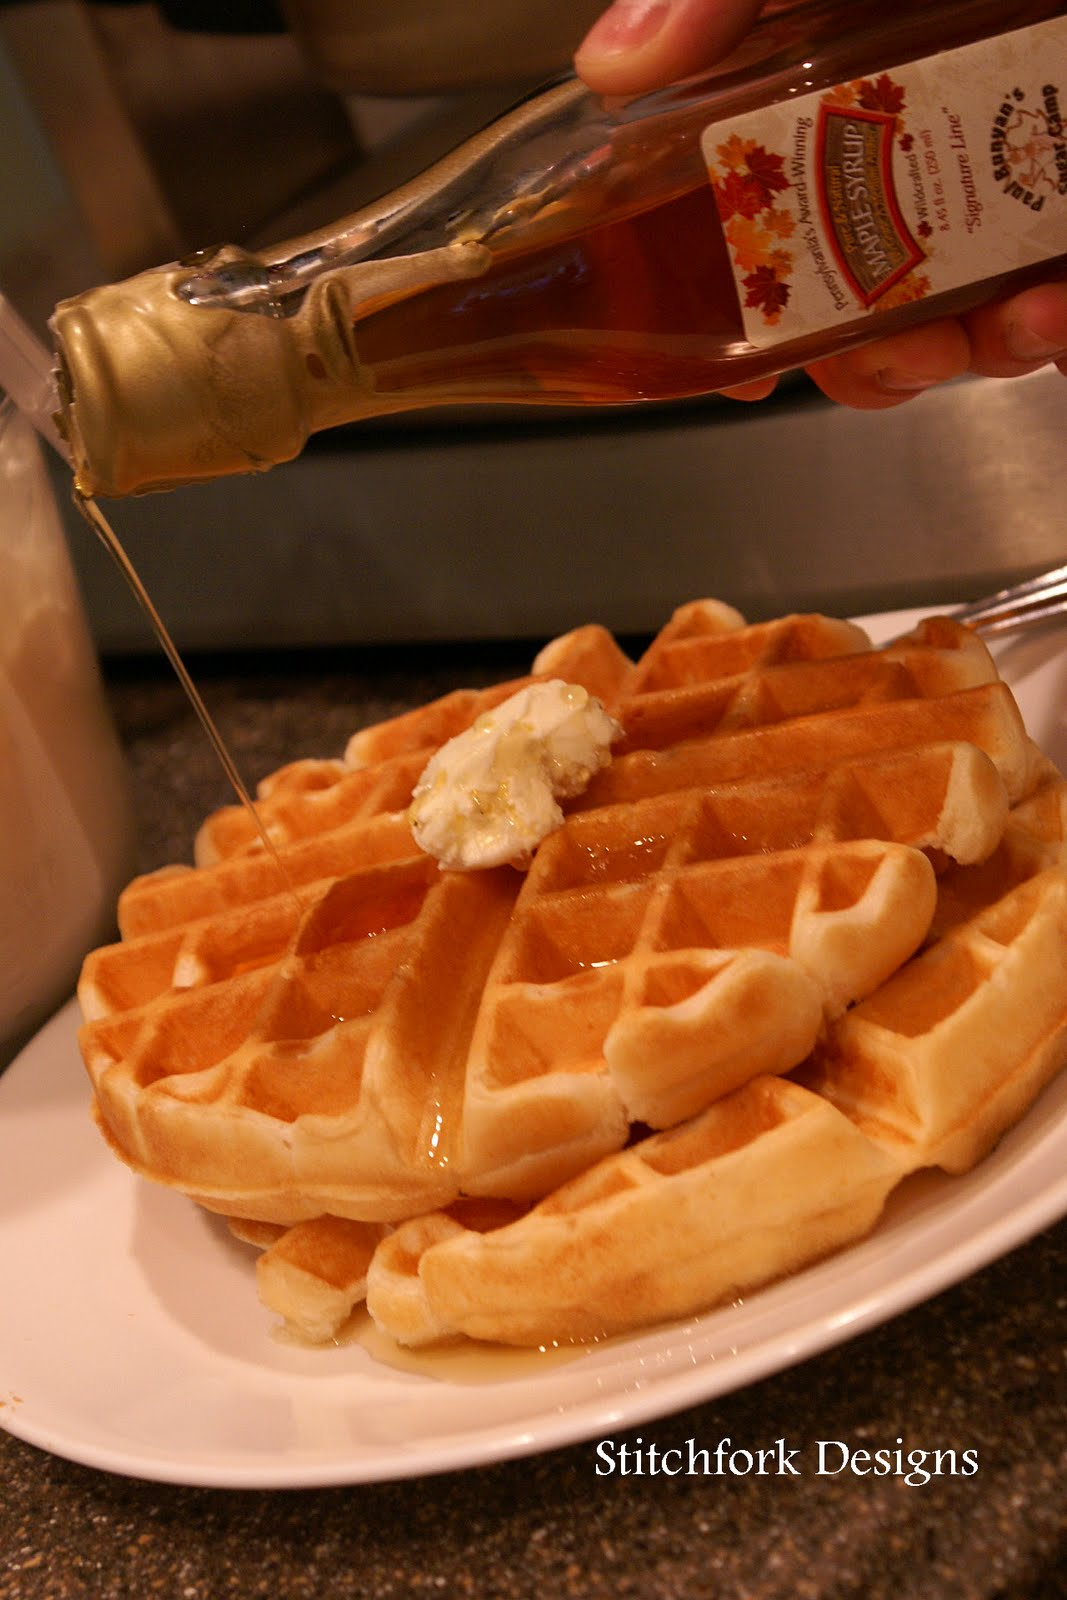 Stitchfork Designs: maple syrup and waffles.....